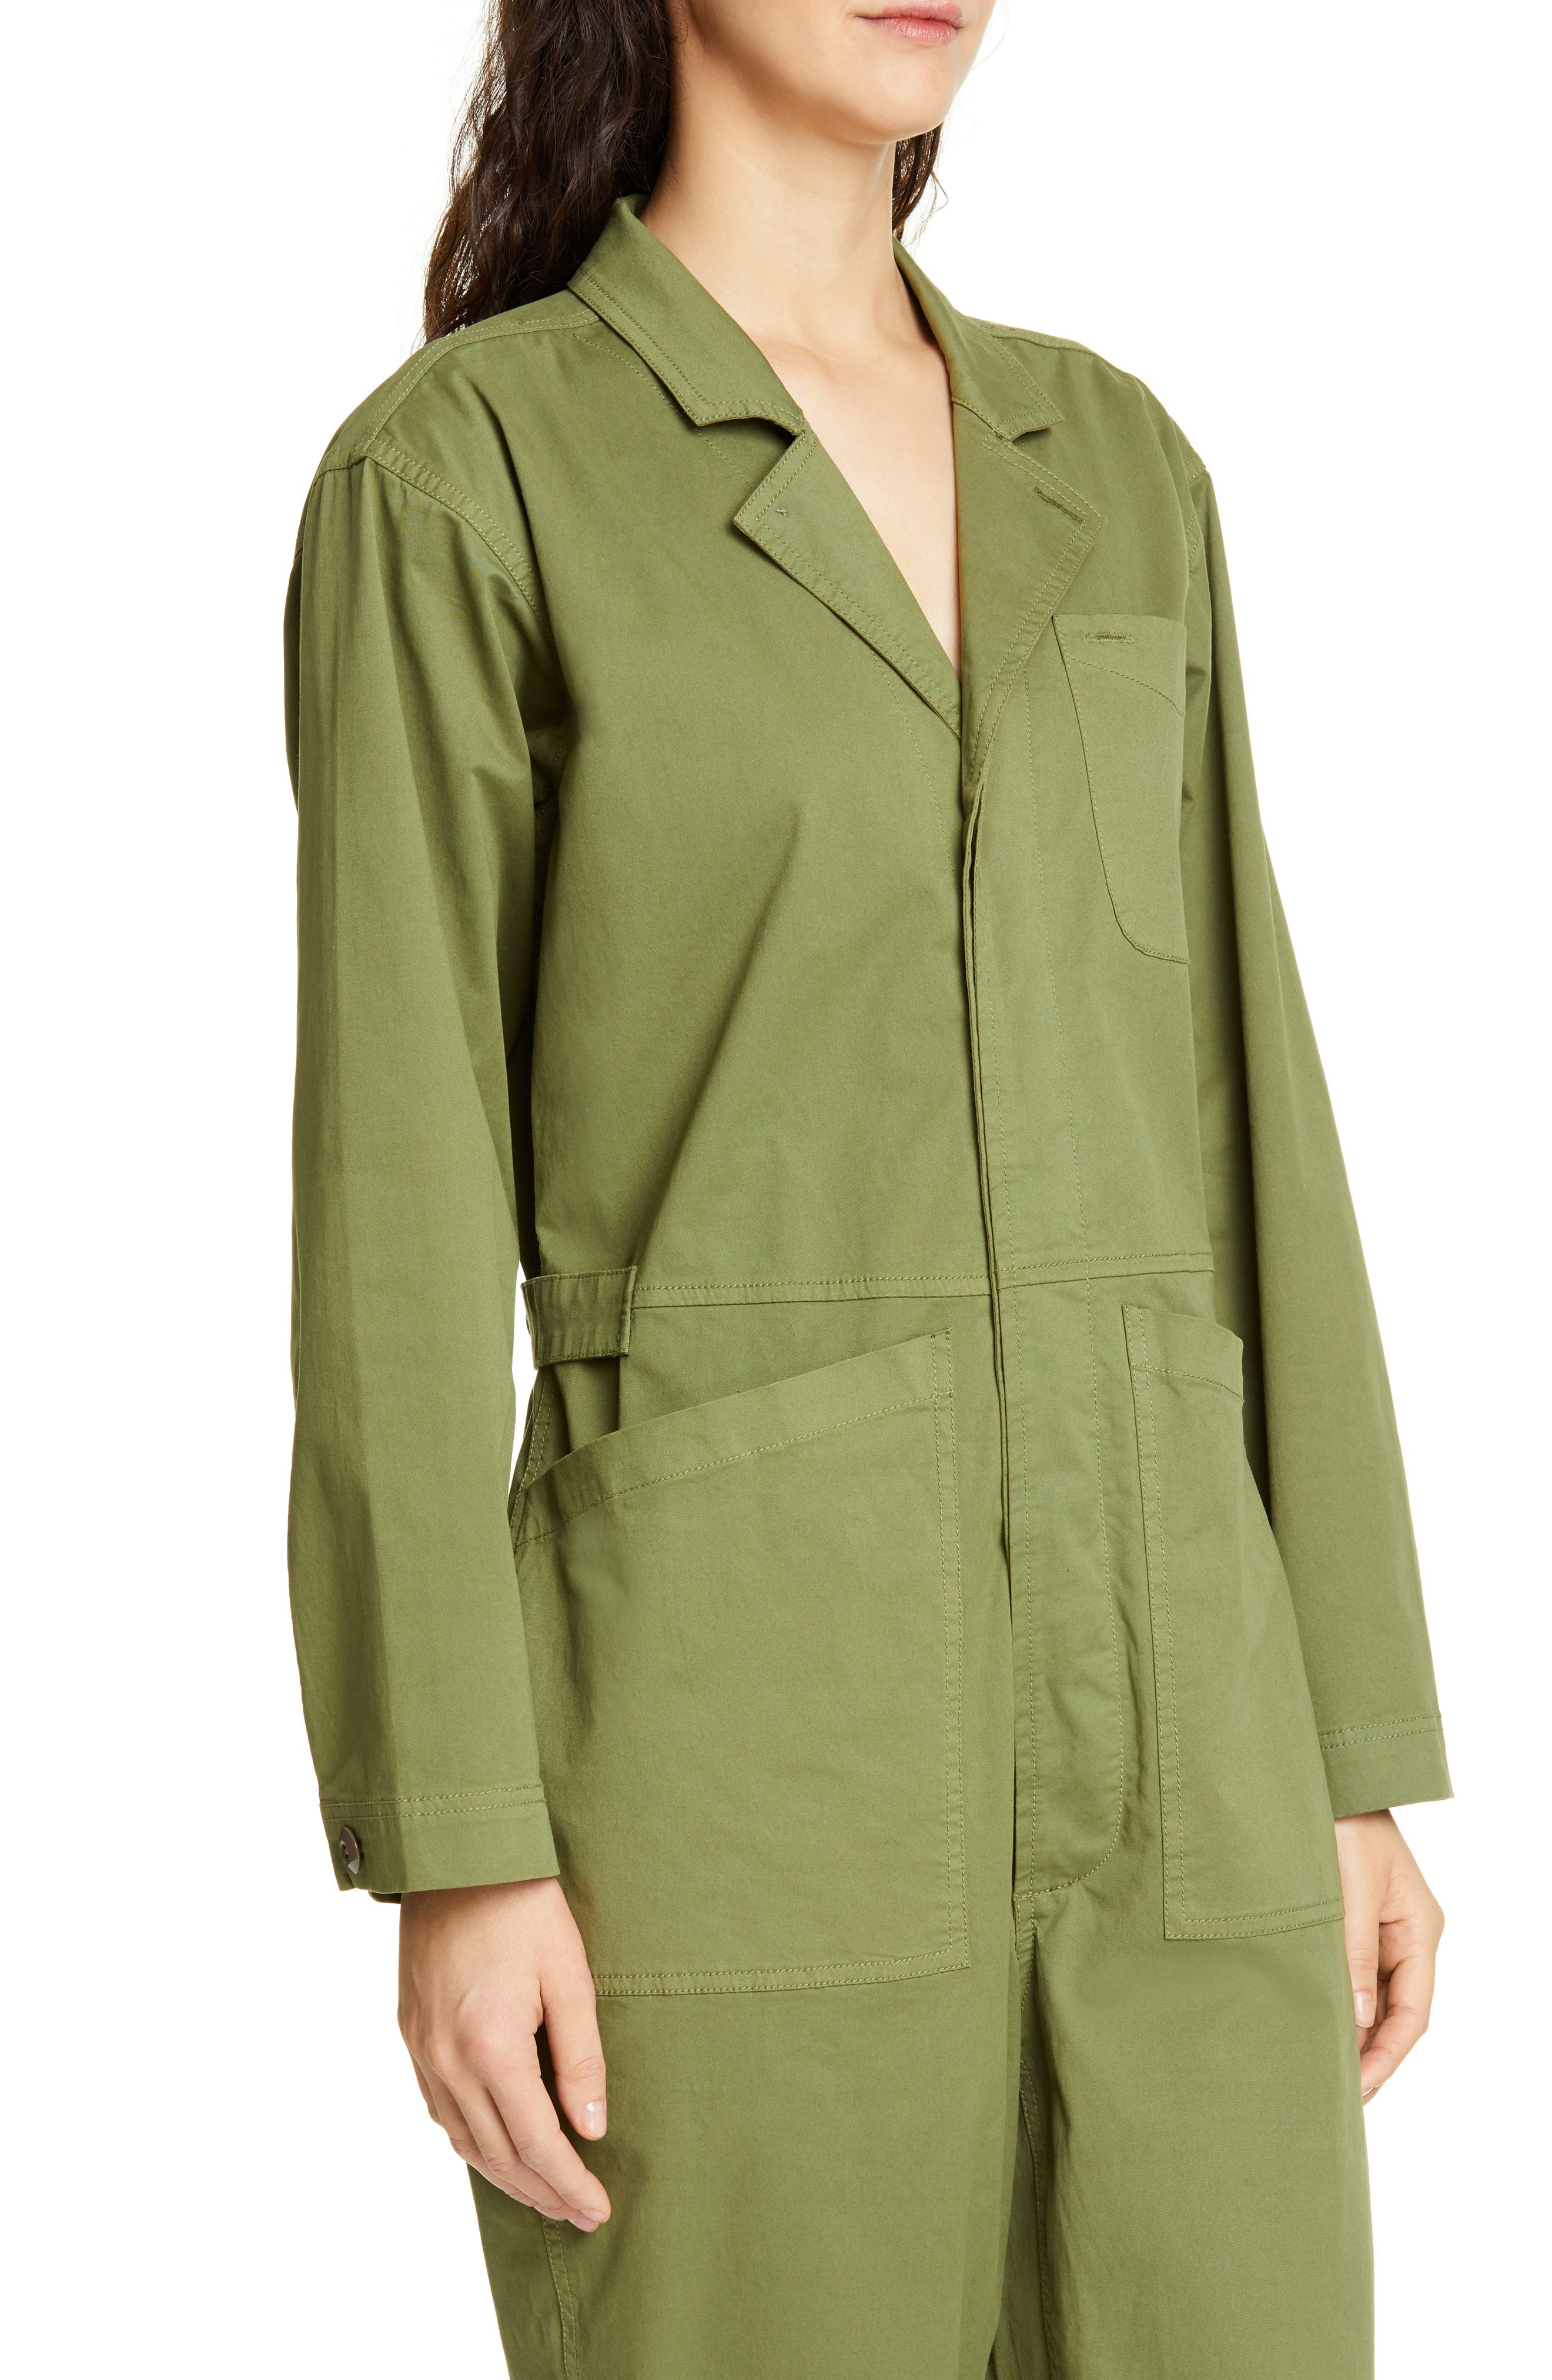 ALEX MILL, Stretch Cotton Jumpsuit, Alternate thumbnail 5, color, ARMY GREEN